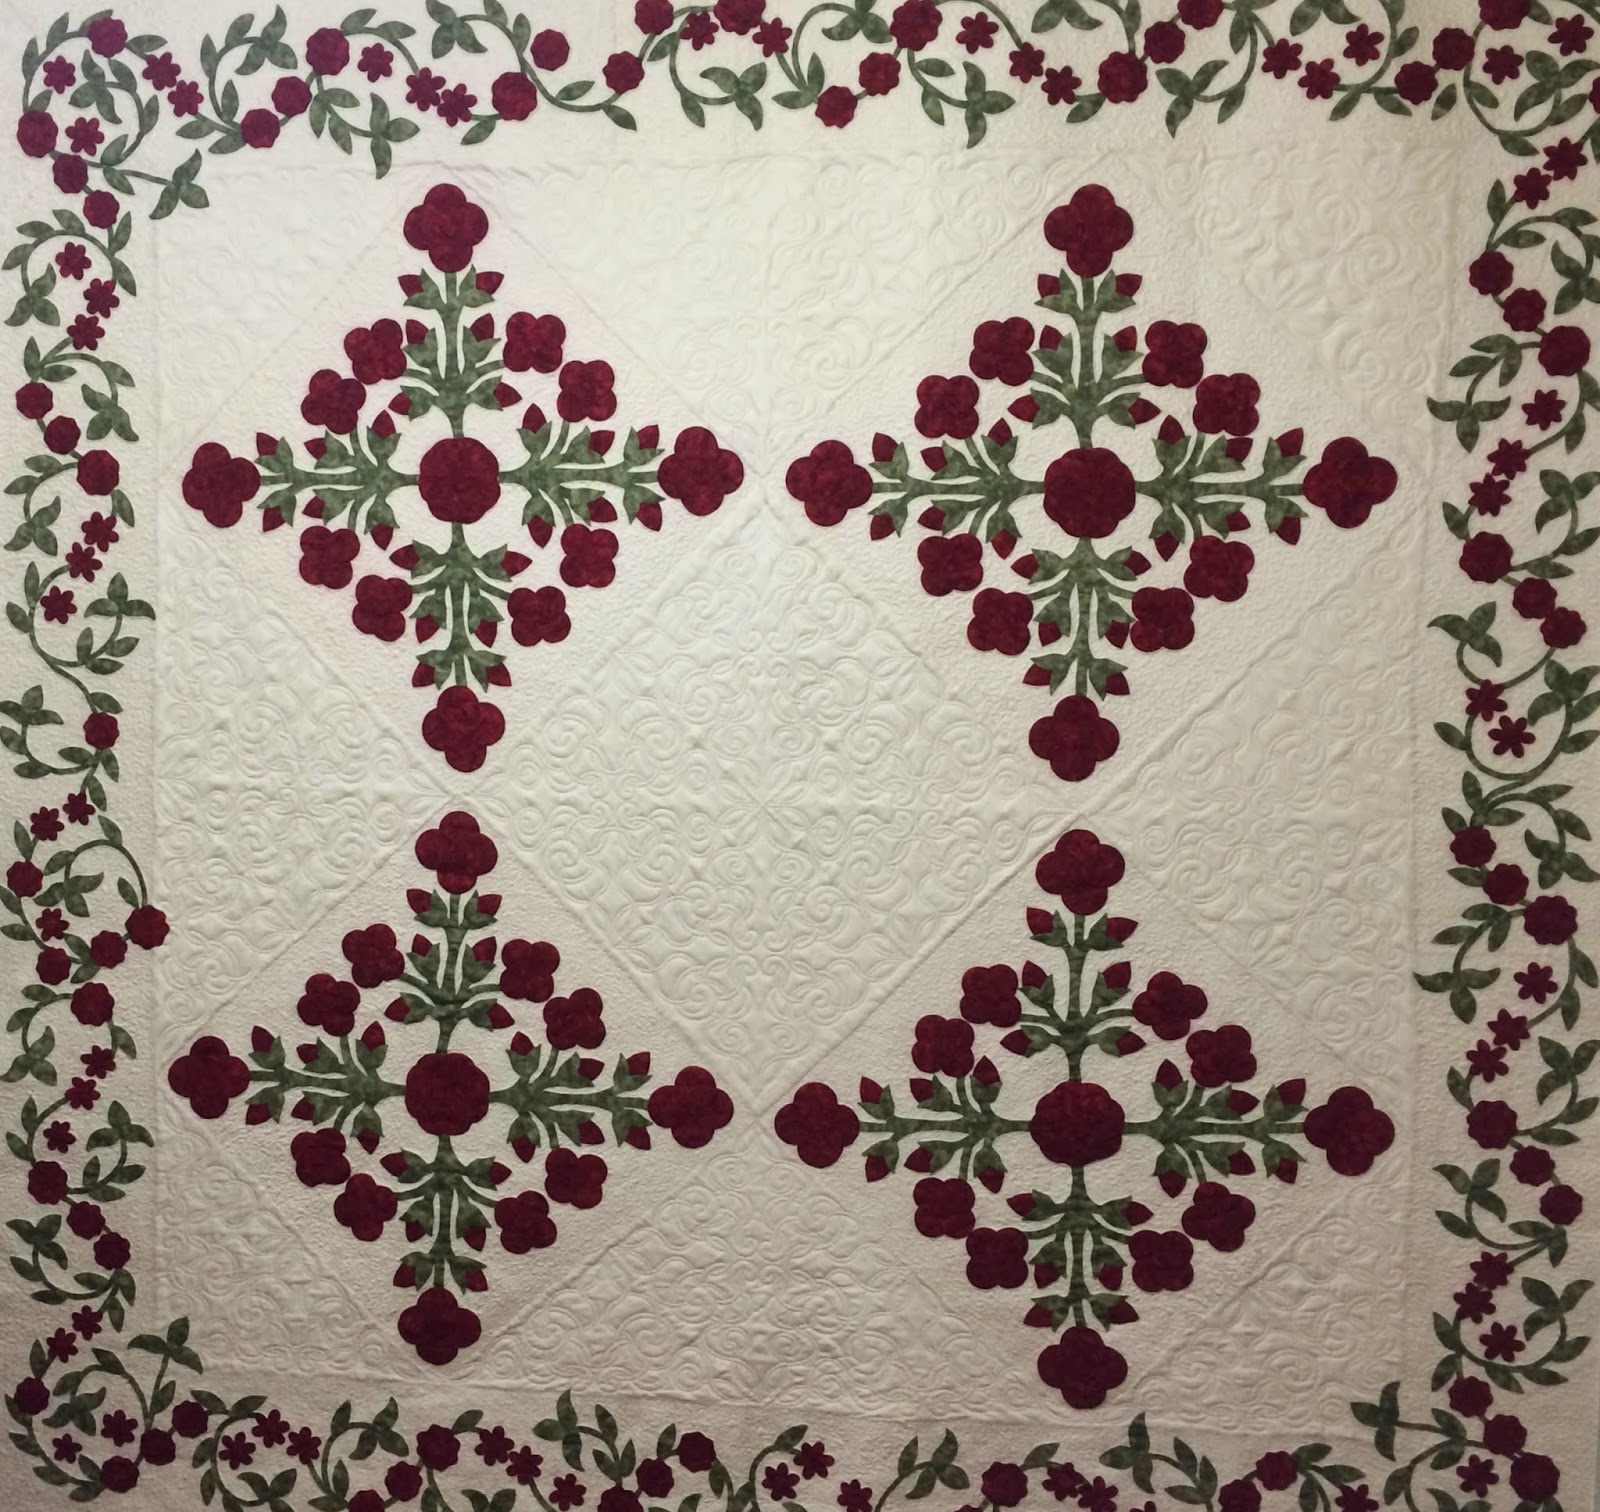 Laura Waclawczyk Antique Red Flower Quilt